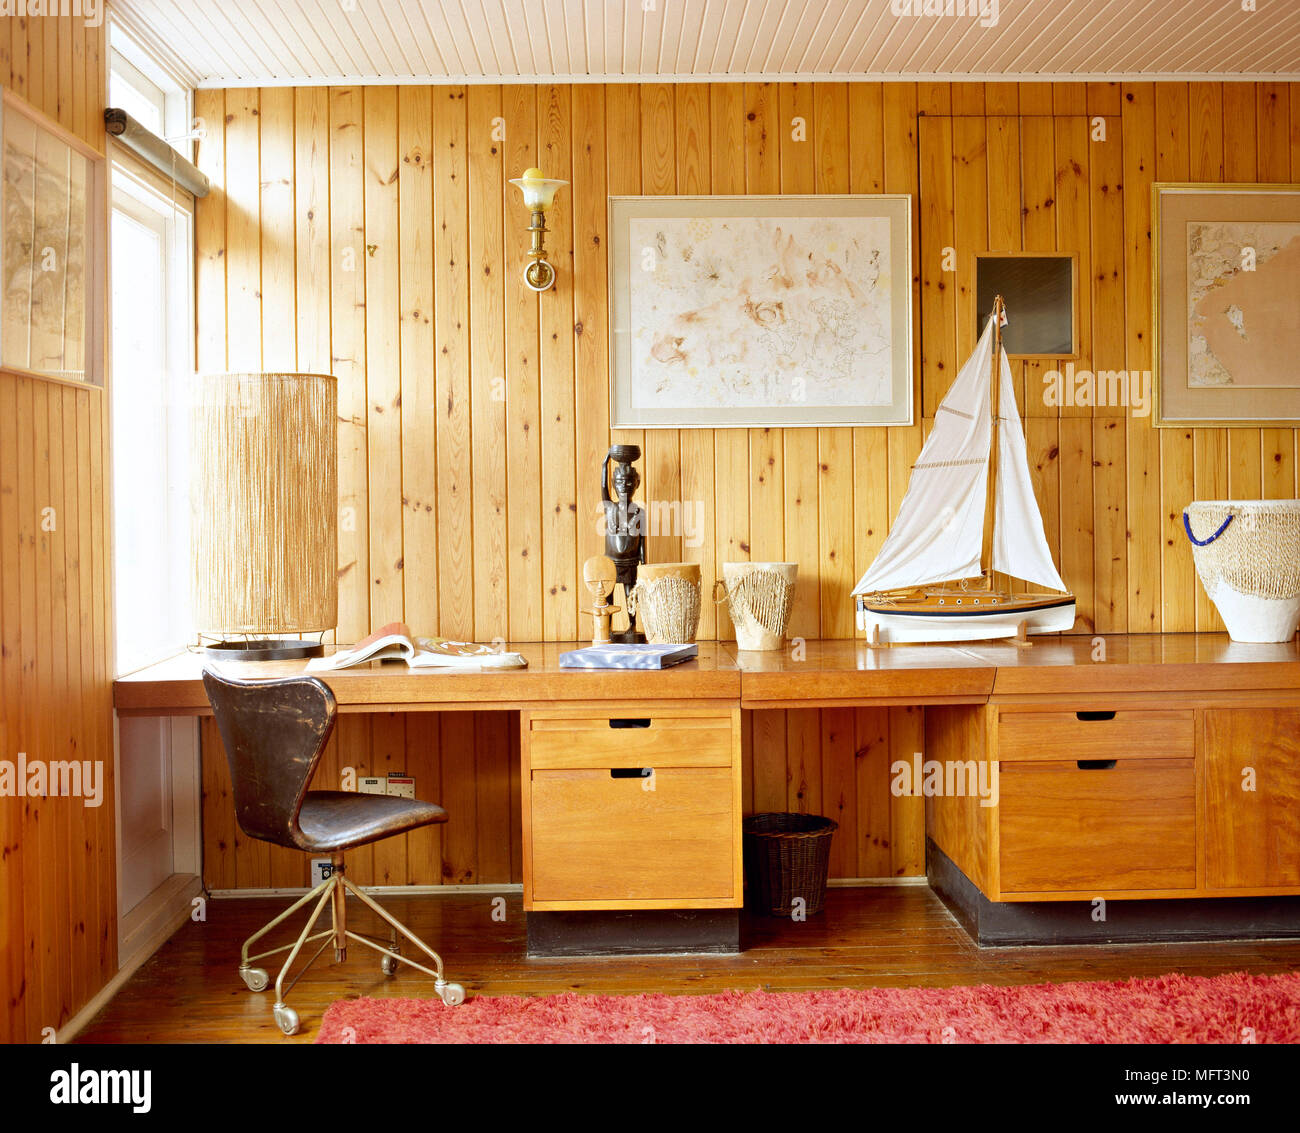 Home office tags home offices Room Country Home Office Detail Tongue And Groove Wood Panelling Desk With Drawers Swivel Leather Chair Interiors Rooms Offices Natural Materials Colours Alamy Country Home Office Detail Tongue And Groove Wood Panelling Desk